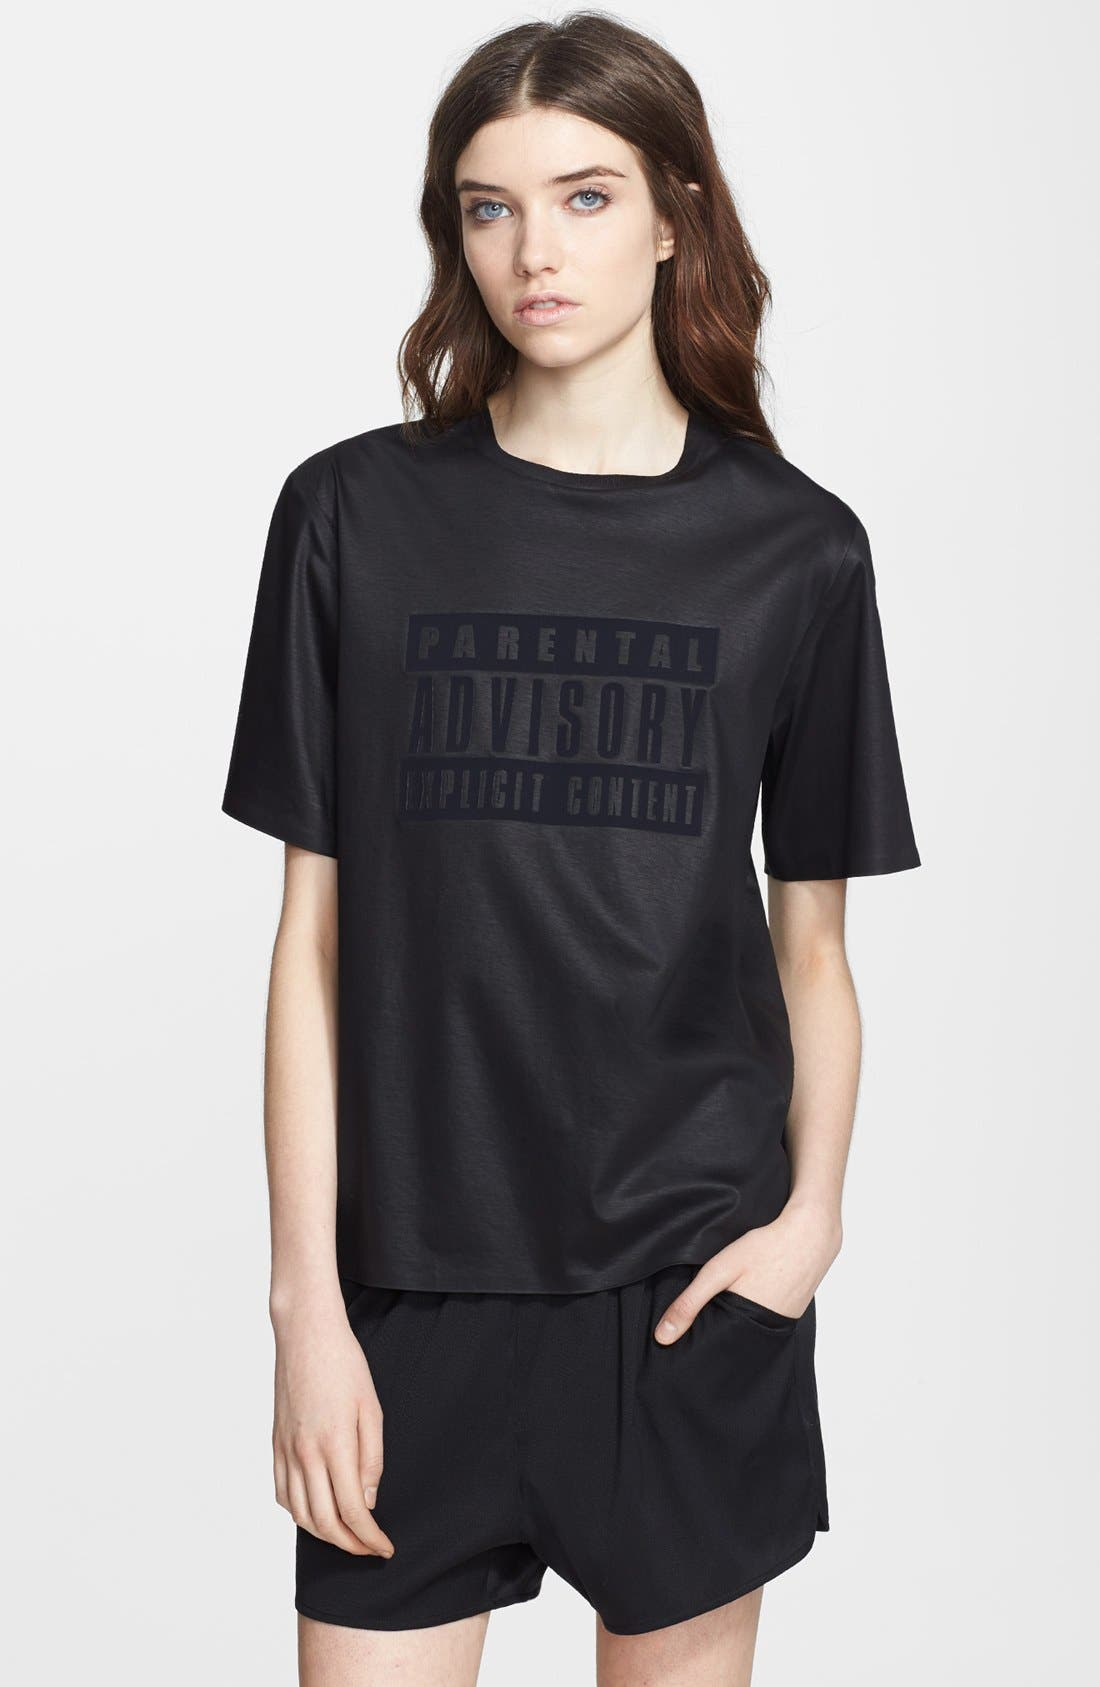 Alternate Image 1 Selected - Alexander Wang 'Parental Advisory' Crewneck Tee